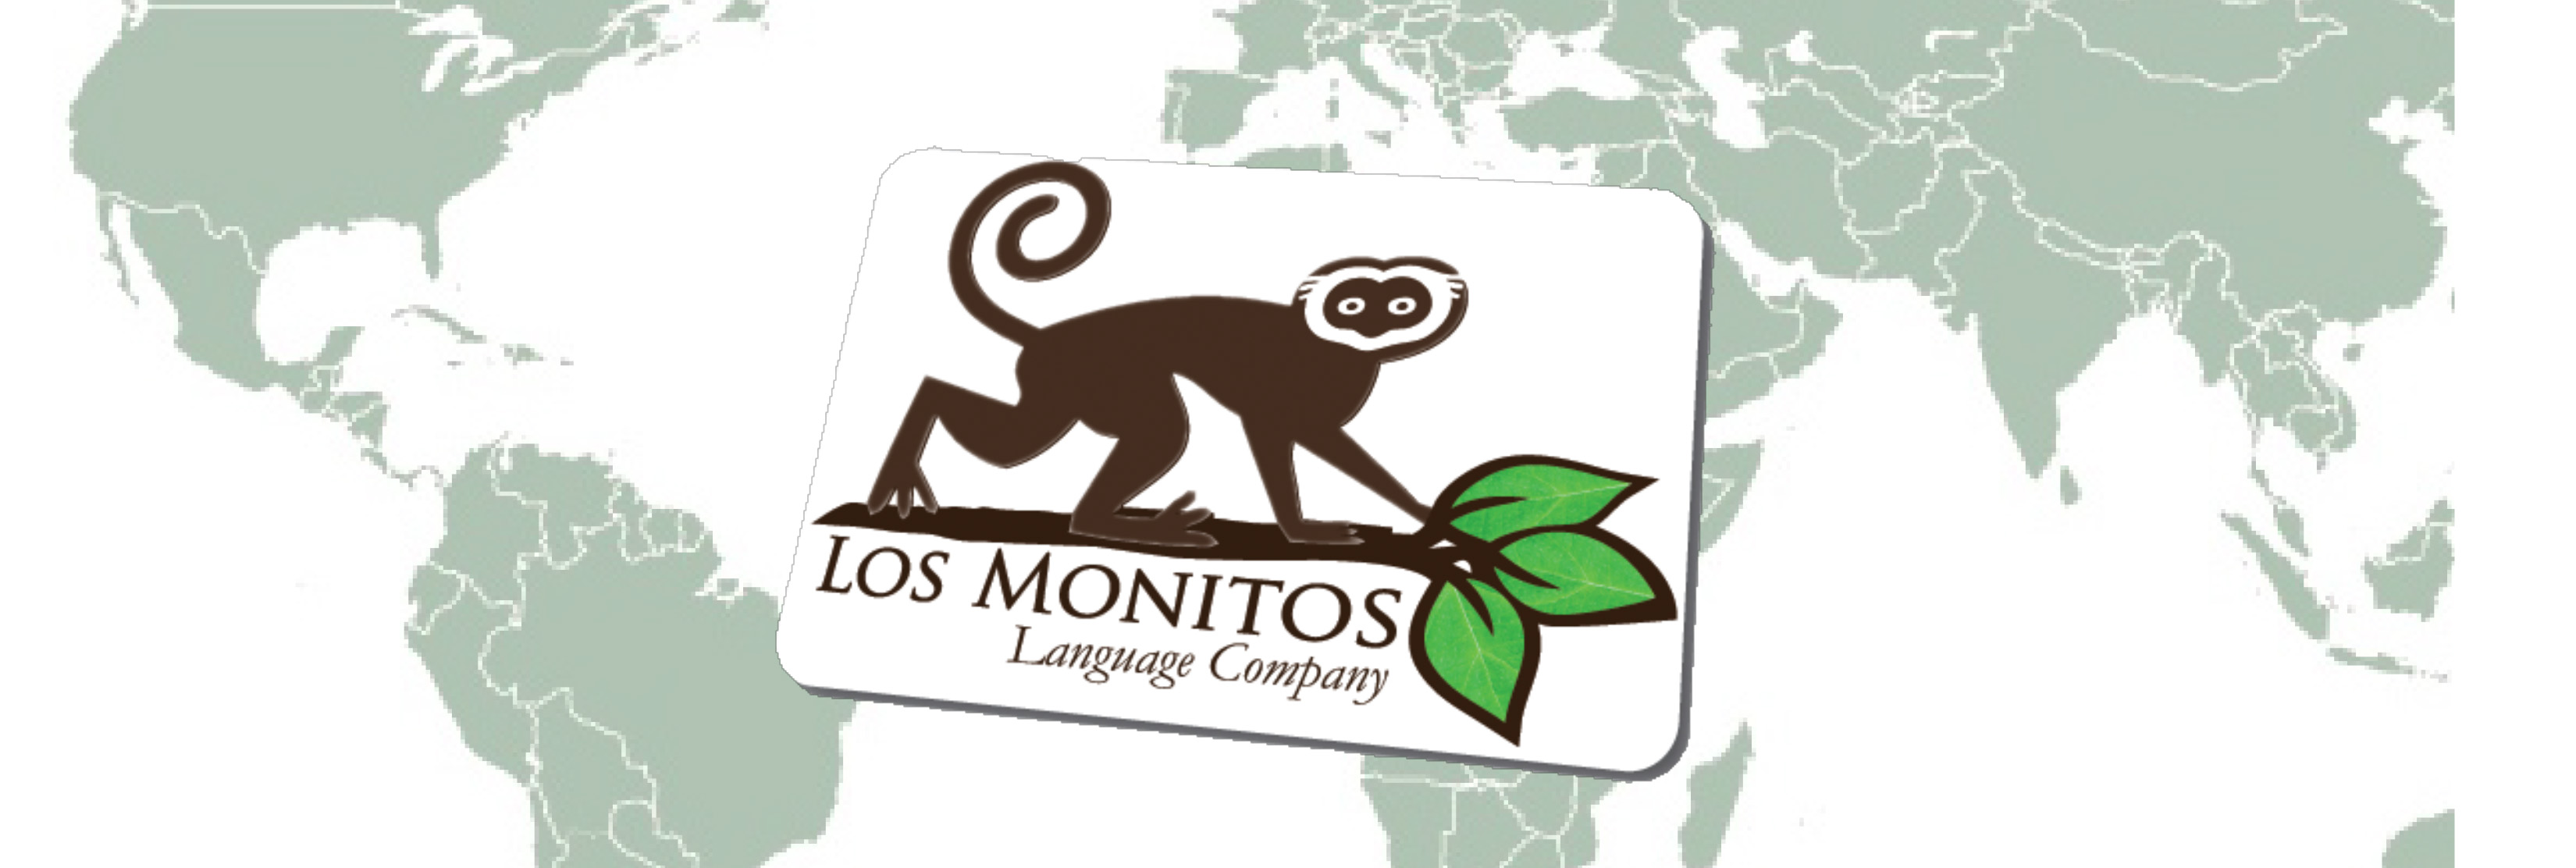 Los Monitos Language Company logo